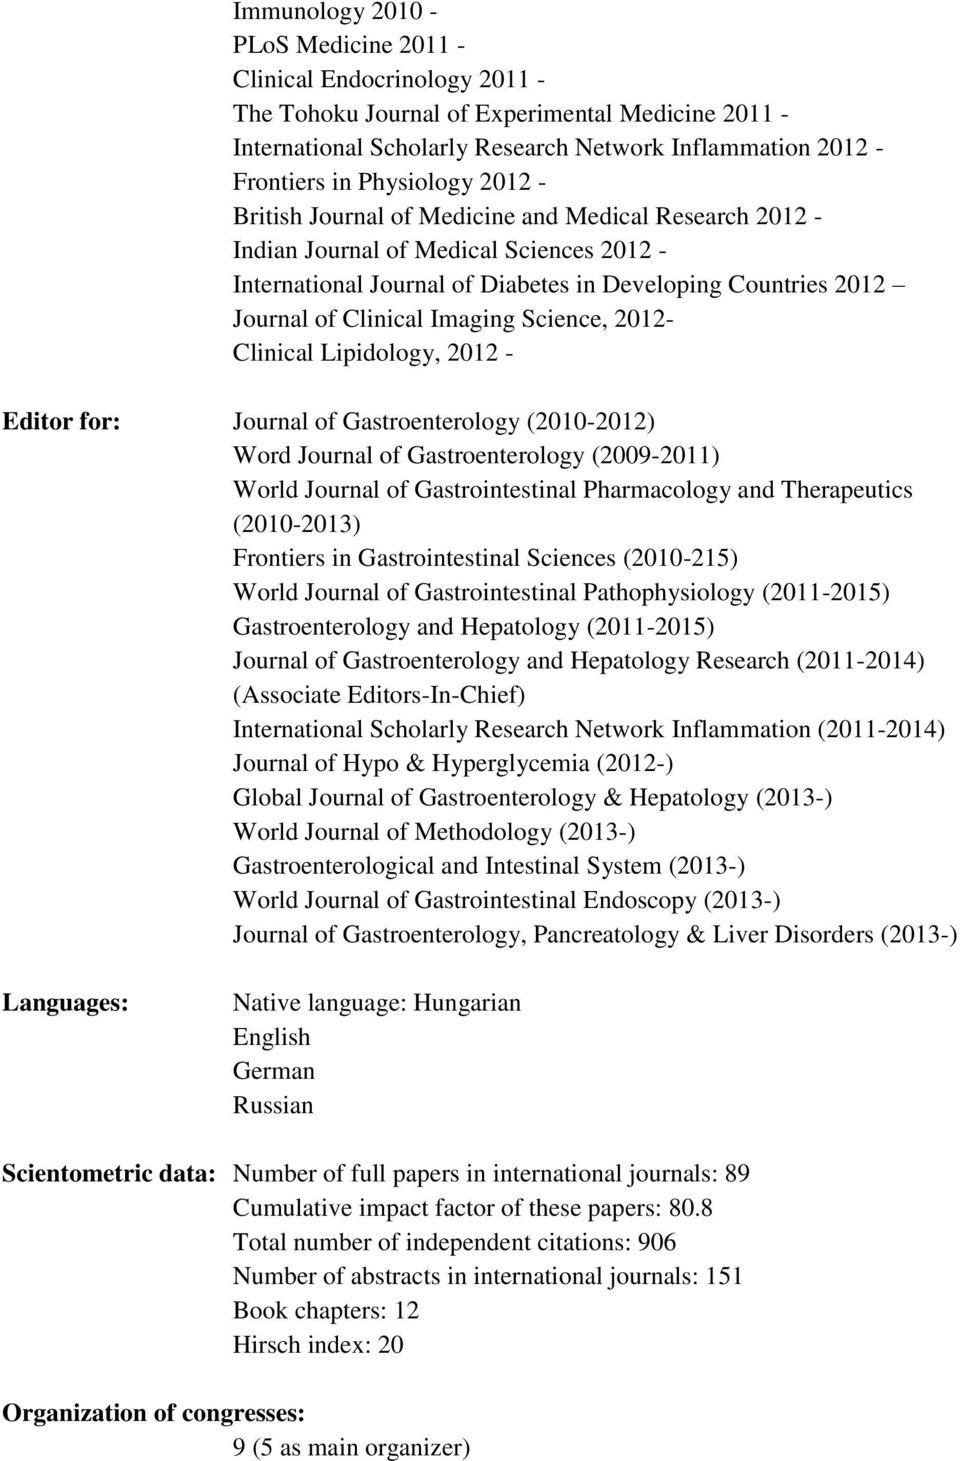 Imaging Science, 2012- Clinical Lipidology, 2012 - Editor for: Journal of Gastroenterology (2010-2012) Word Journal of Gastroenterology (2009-2011) World Journal of Gastrointestinal Pharmacology and